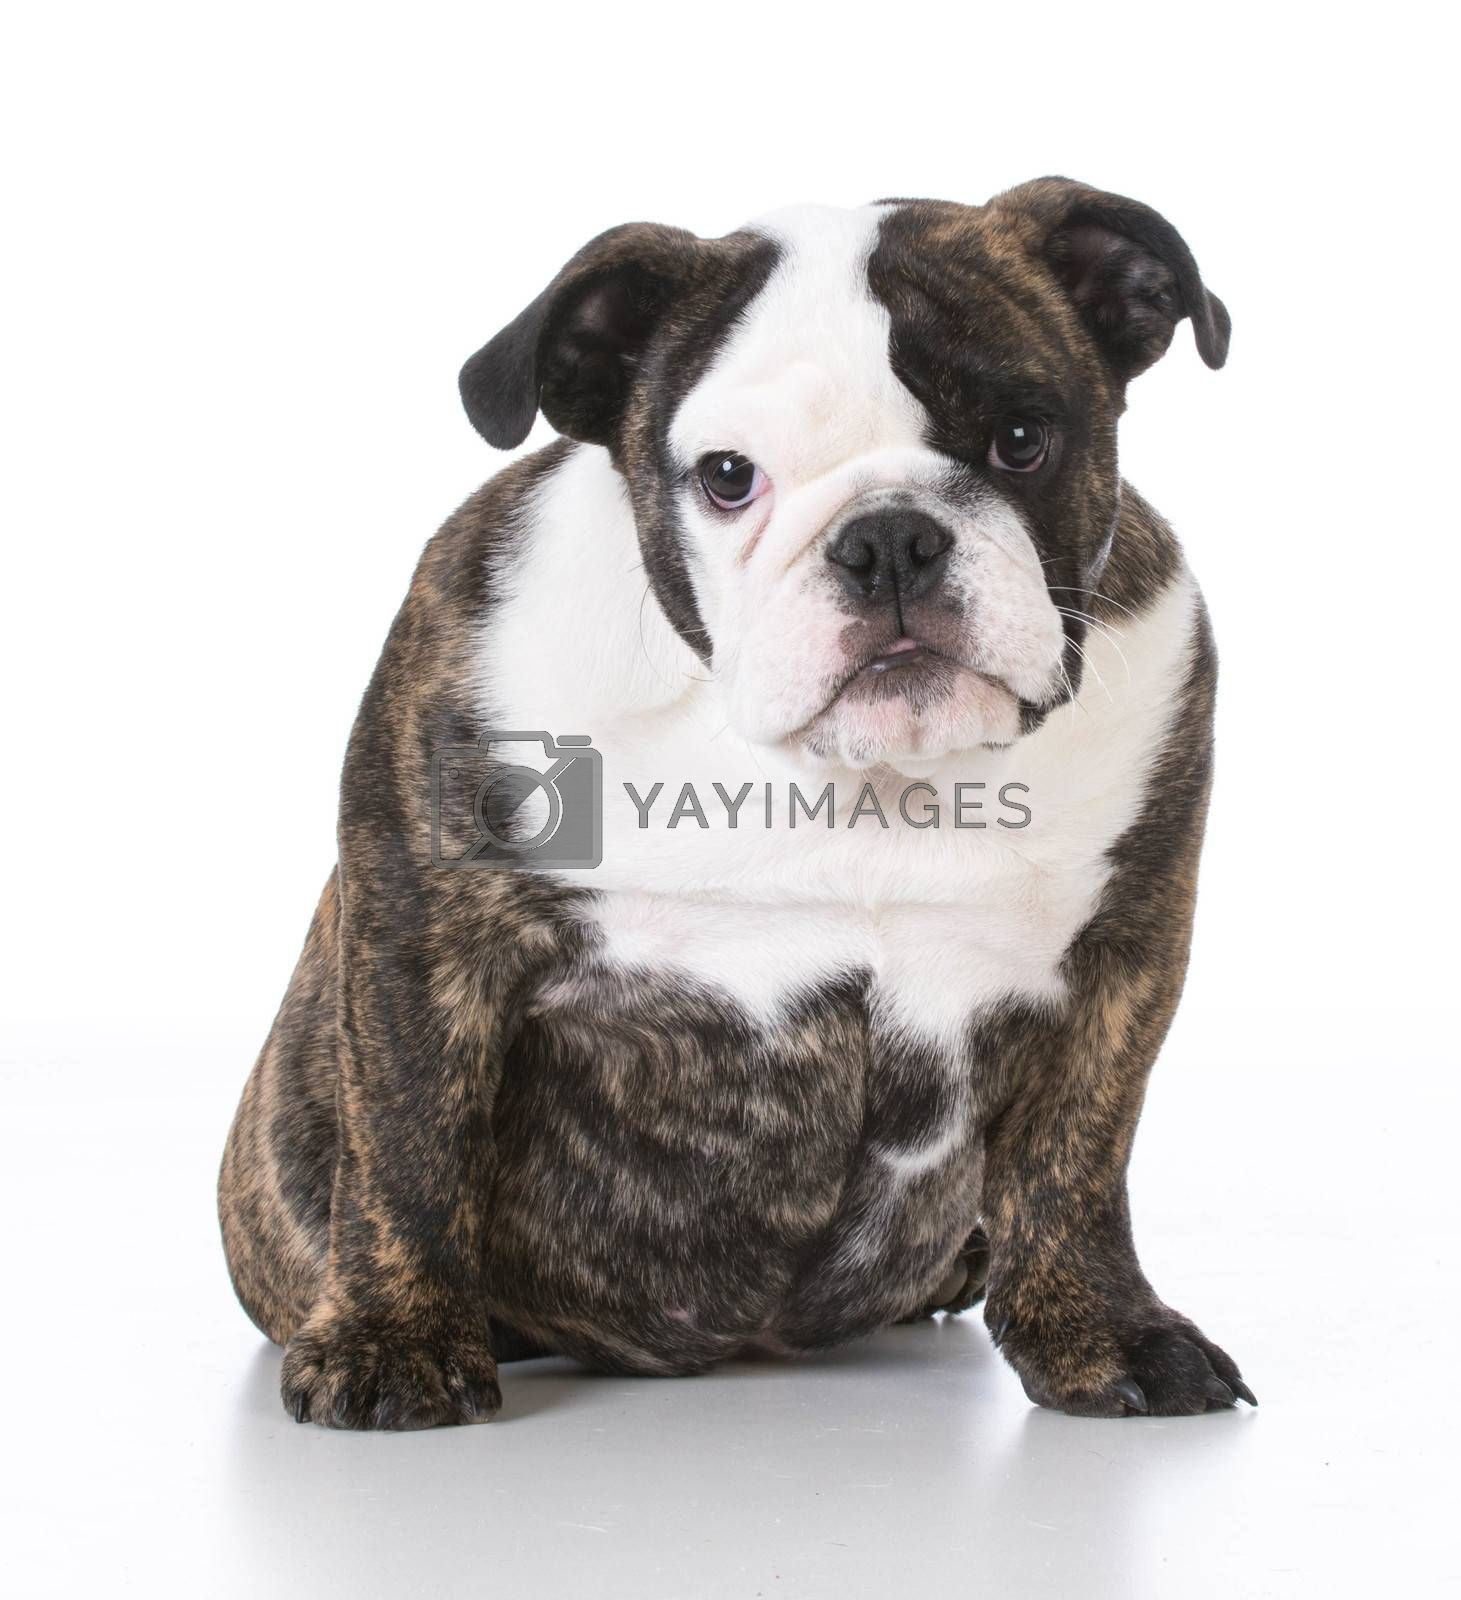 english bulldog puppy sitting looking at viewer on white background